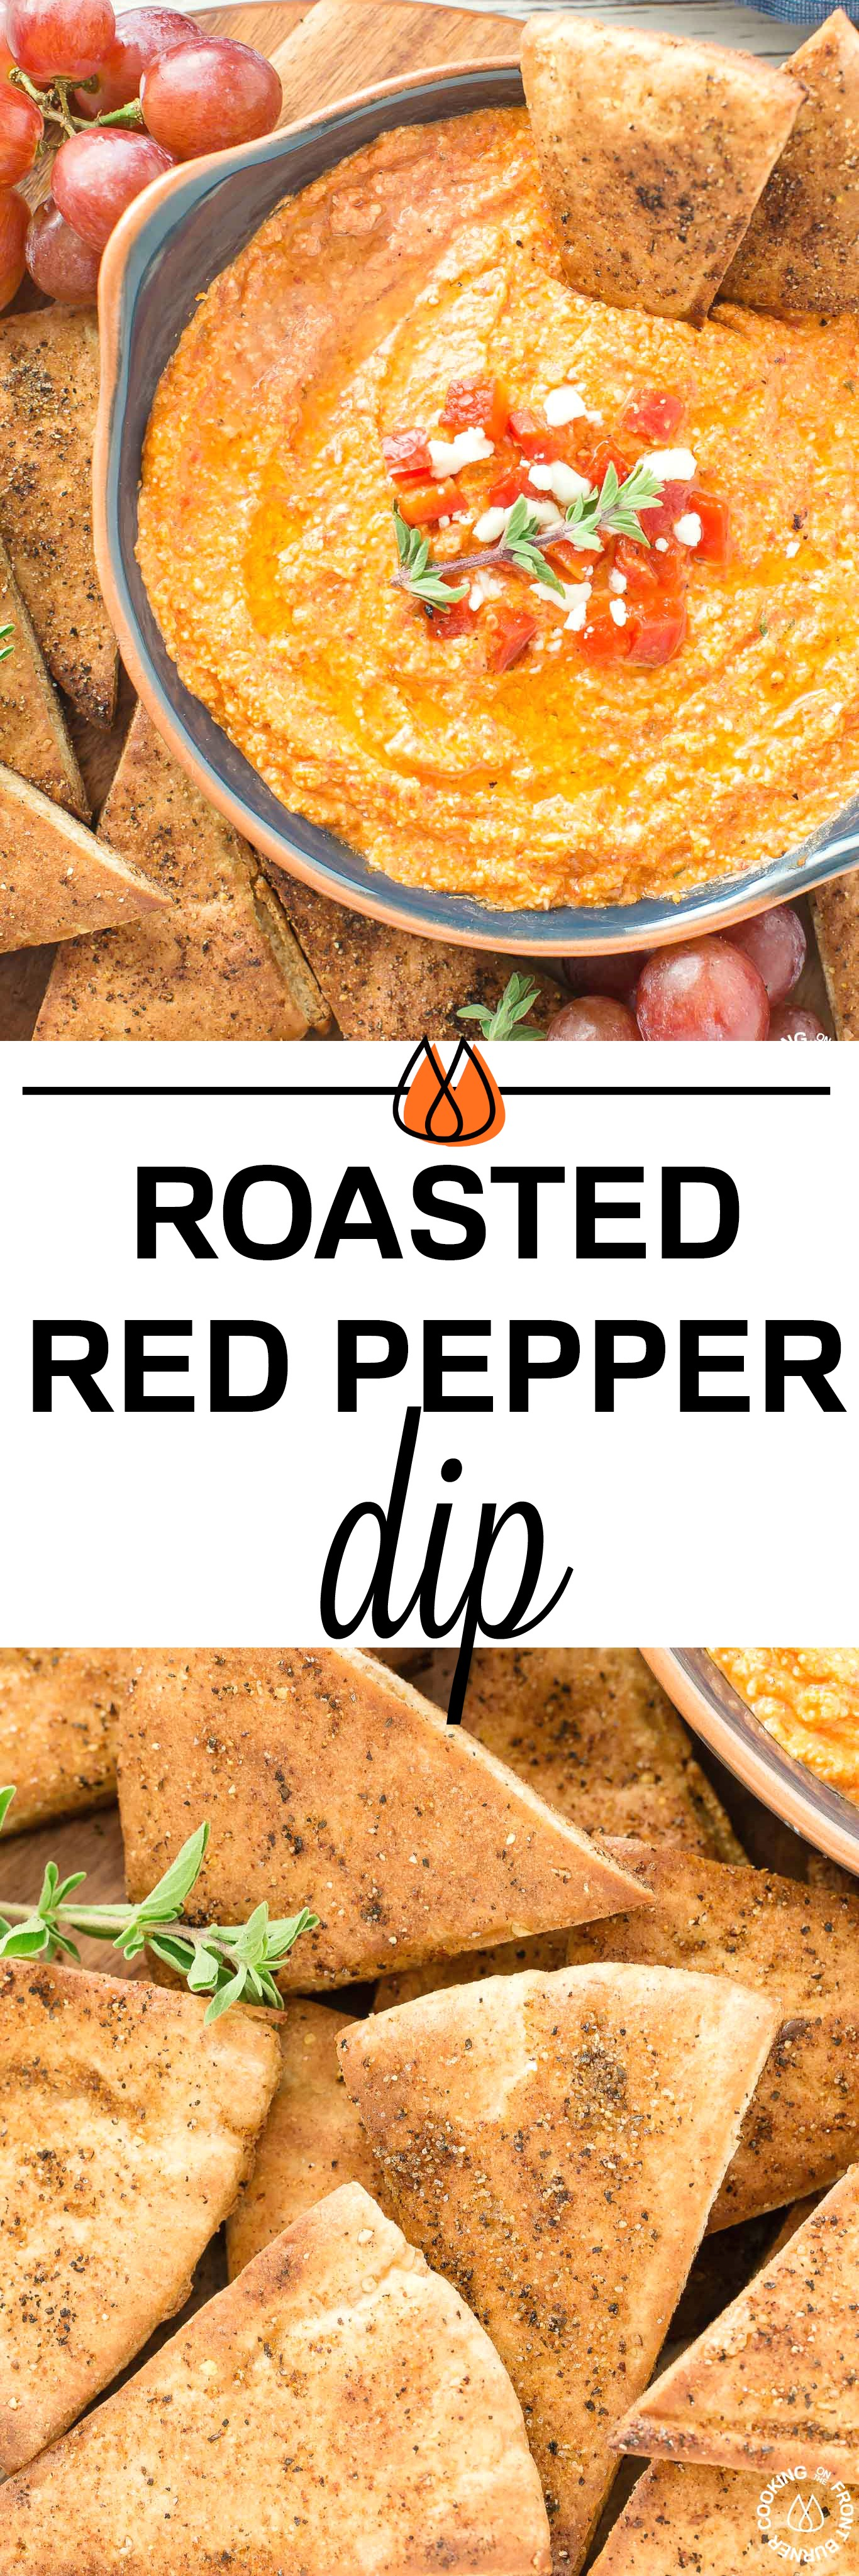 This Roasted Red Pepper Dip is an easy as throwing all the ingredients in a food processor, giving it a 30 second whirl and on your table in no time.  The Mediterranean flavors are perfect with toasted pita bread that you can also season up and bake as dippers. #redpepperdip #appetizer